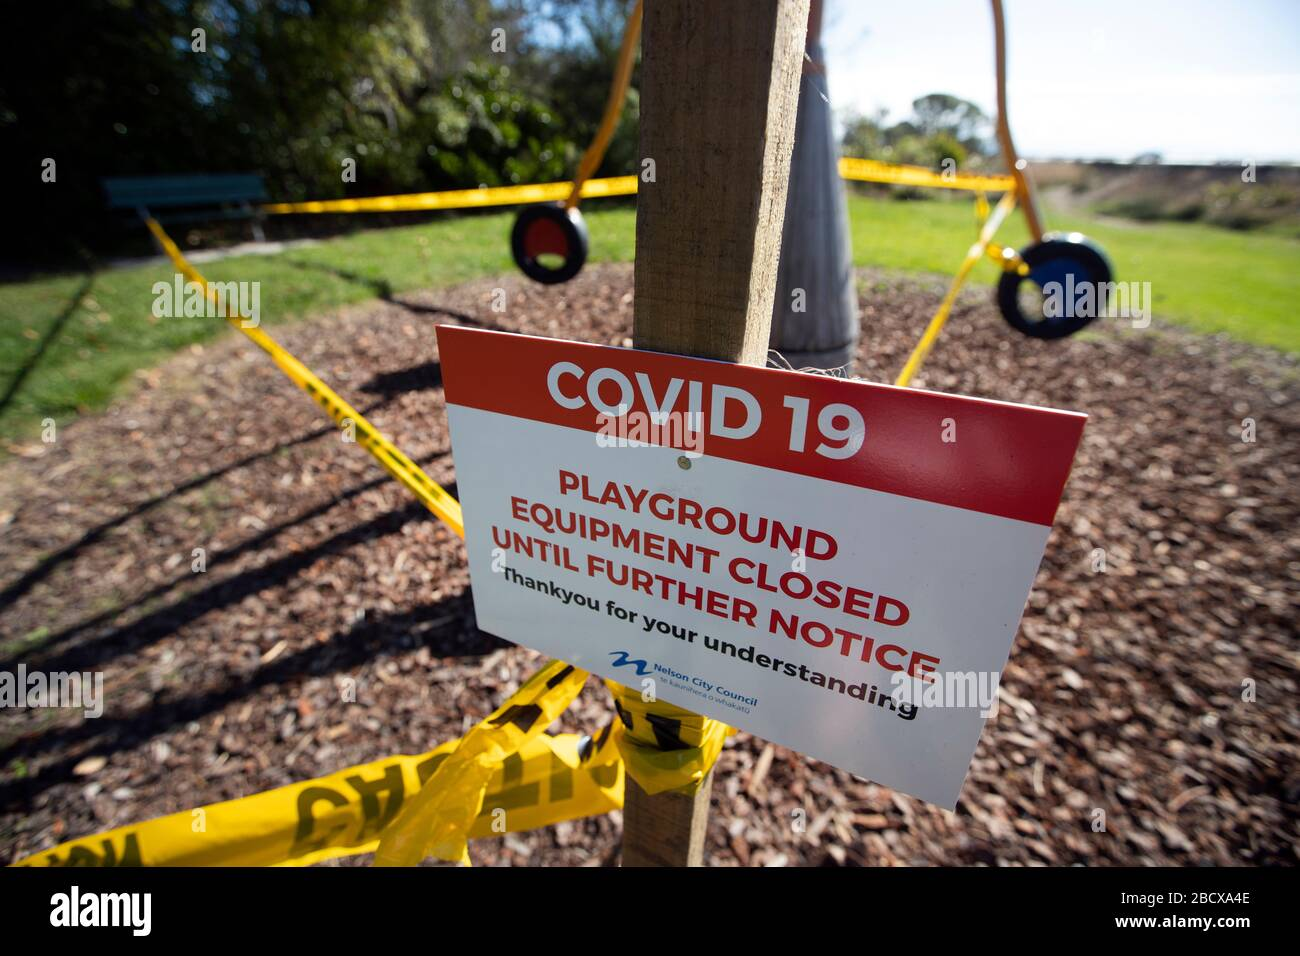 Signs at closed playground due to Covid 19 virus lockdown, Nelson, New Zealand Stock Photo